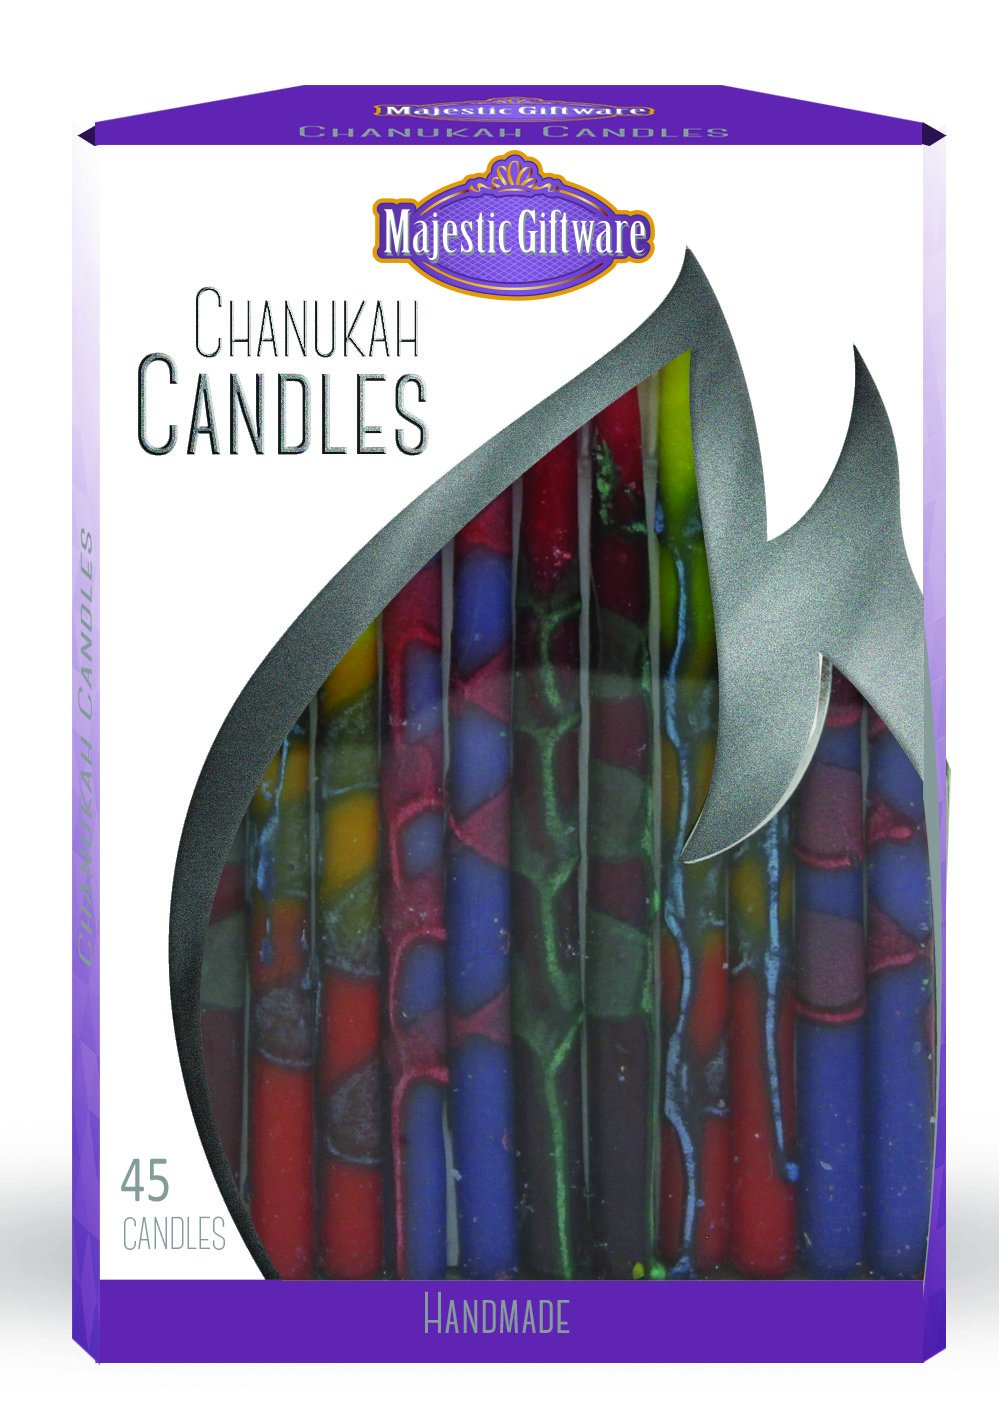 Majestic Giftware CP246 Handcrafted Hanukkah Candles (45 Pack), 6